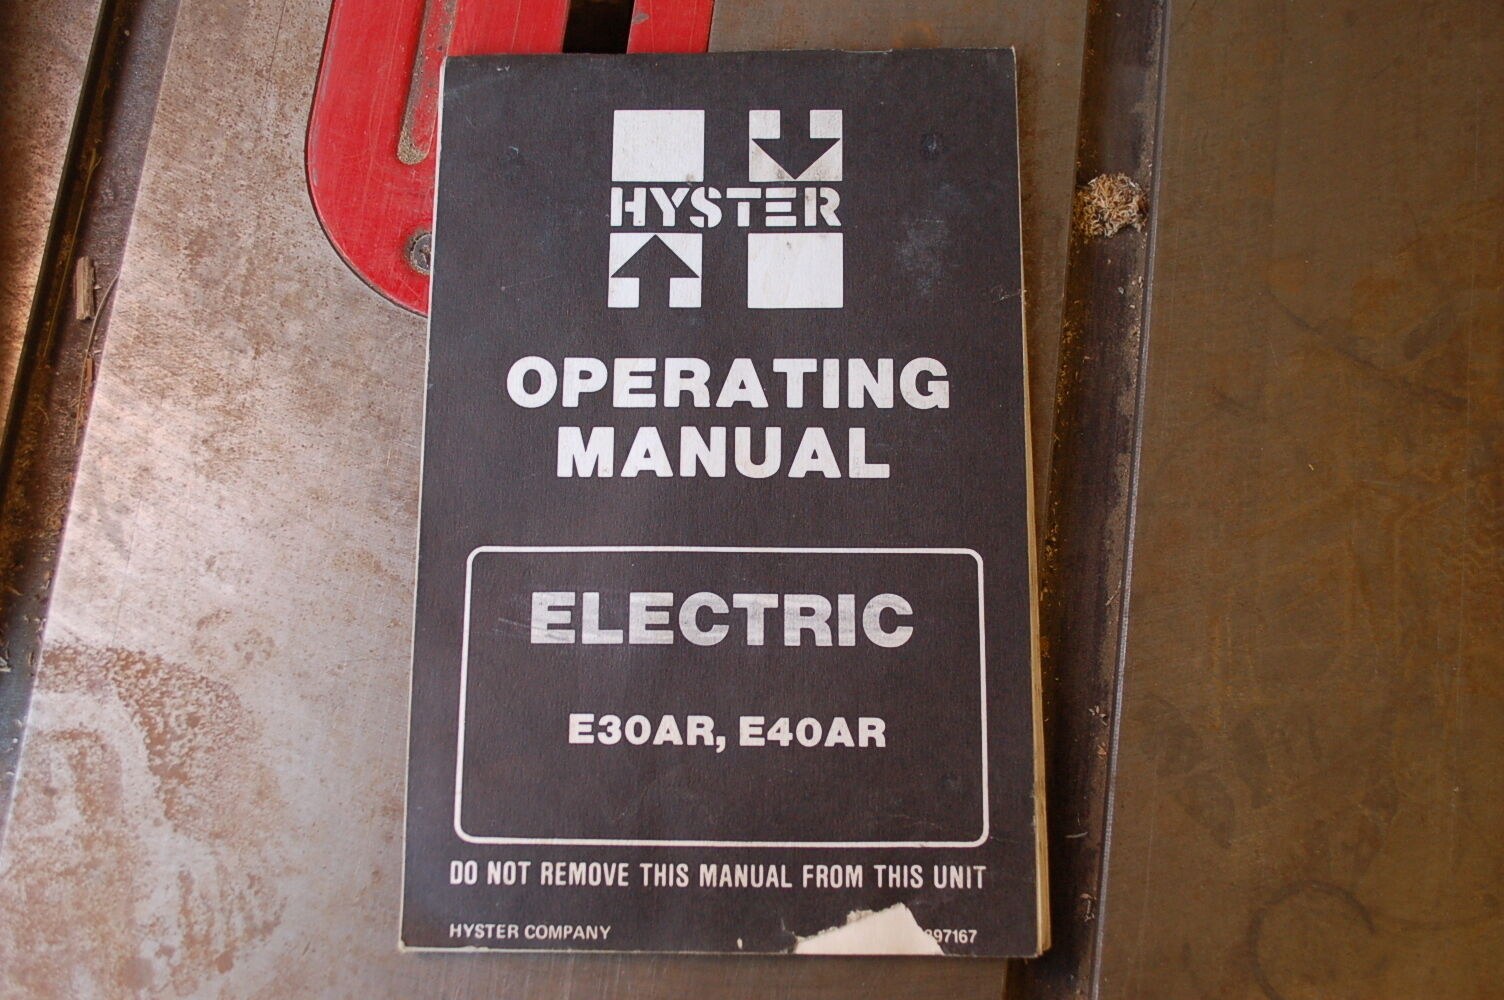 Hyster E30ar E40ar Electric Forklift Owner Operator Operation Manual Wiring Diagram E60 1 Of 8only Available Book Guide